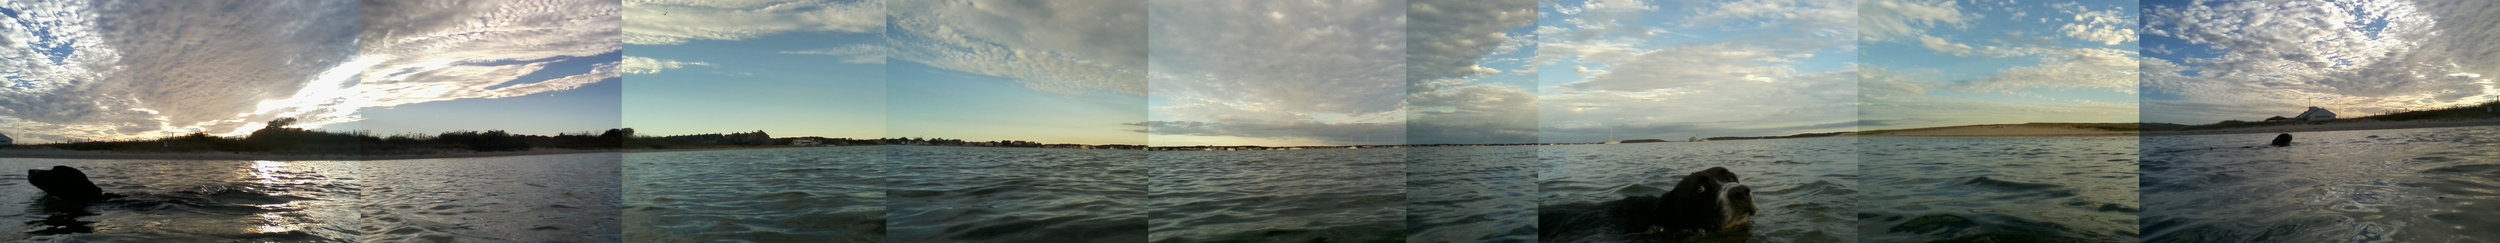 HYANNIS360, 360 degree views, photographs of local area…click to go to the page.